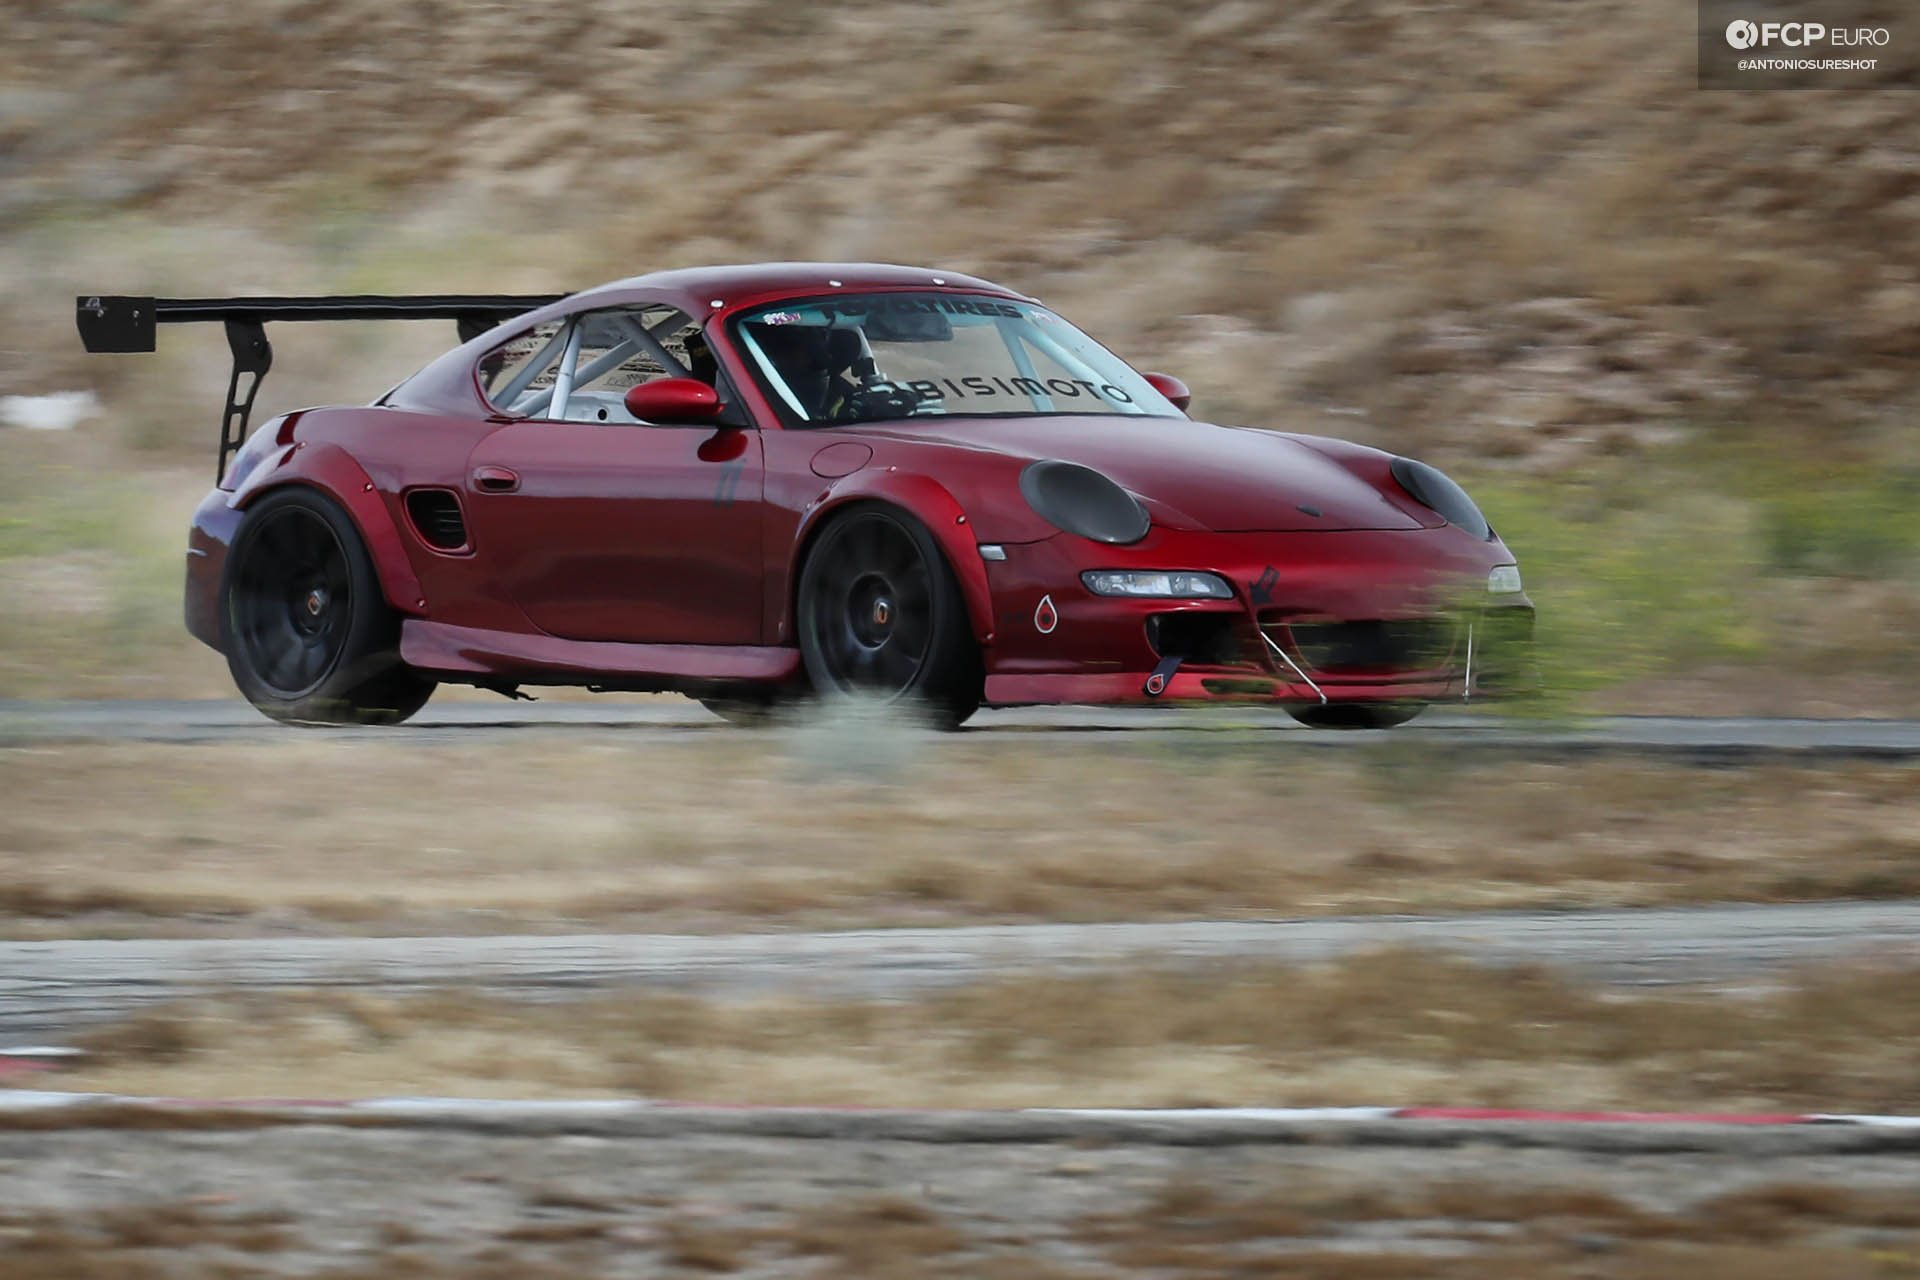 Bisimoto AEM Infinity Porsche Boxster 986 Twin Turbo Center Seat with 997 GT3 facelift